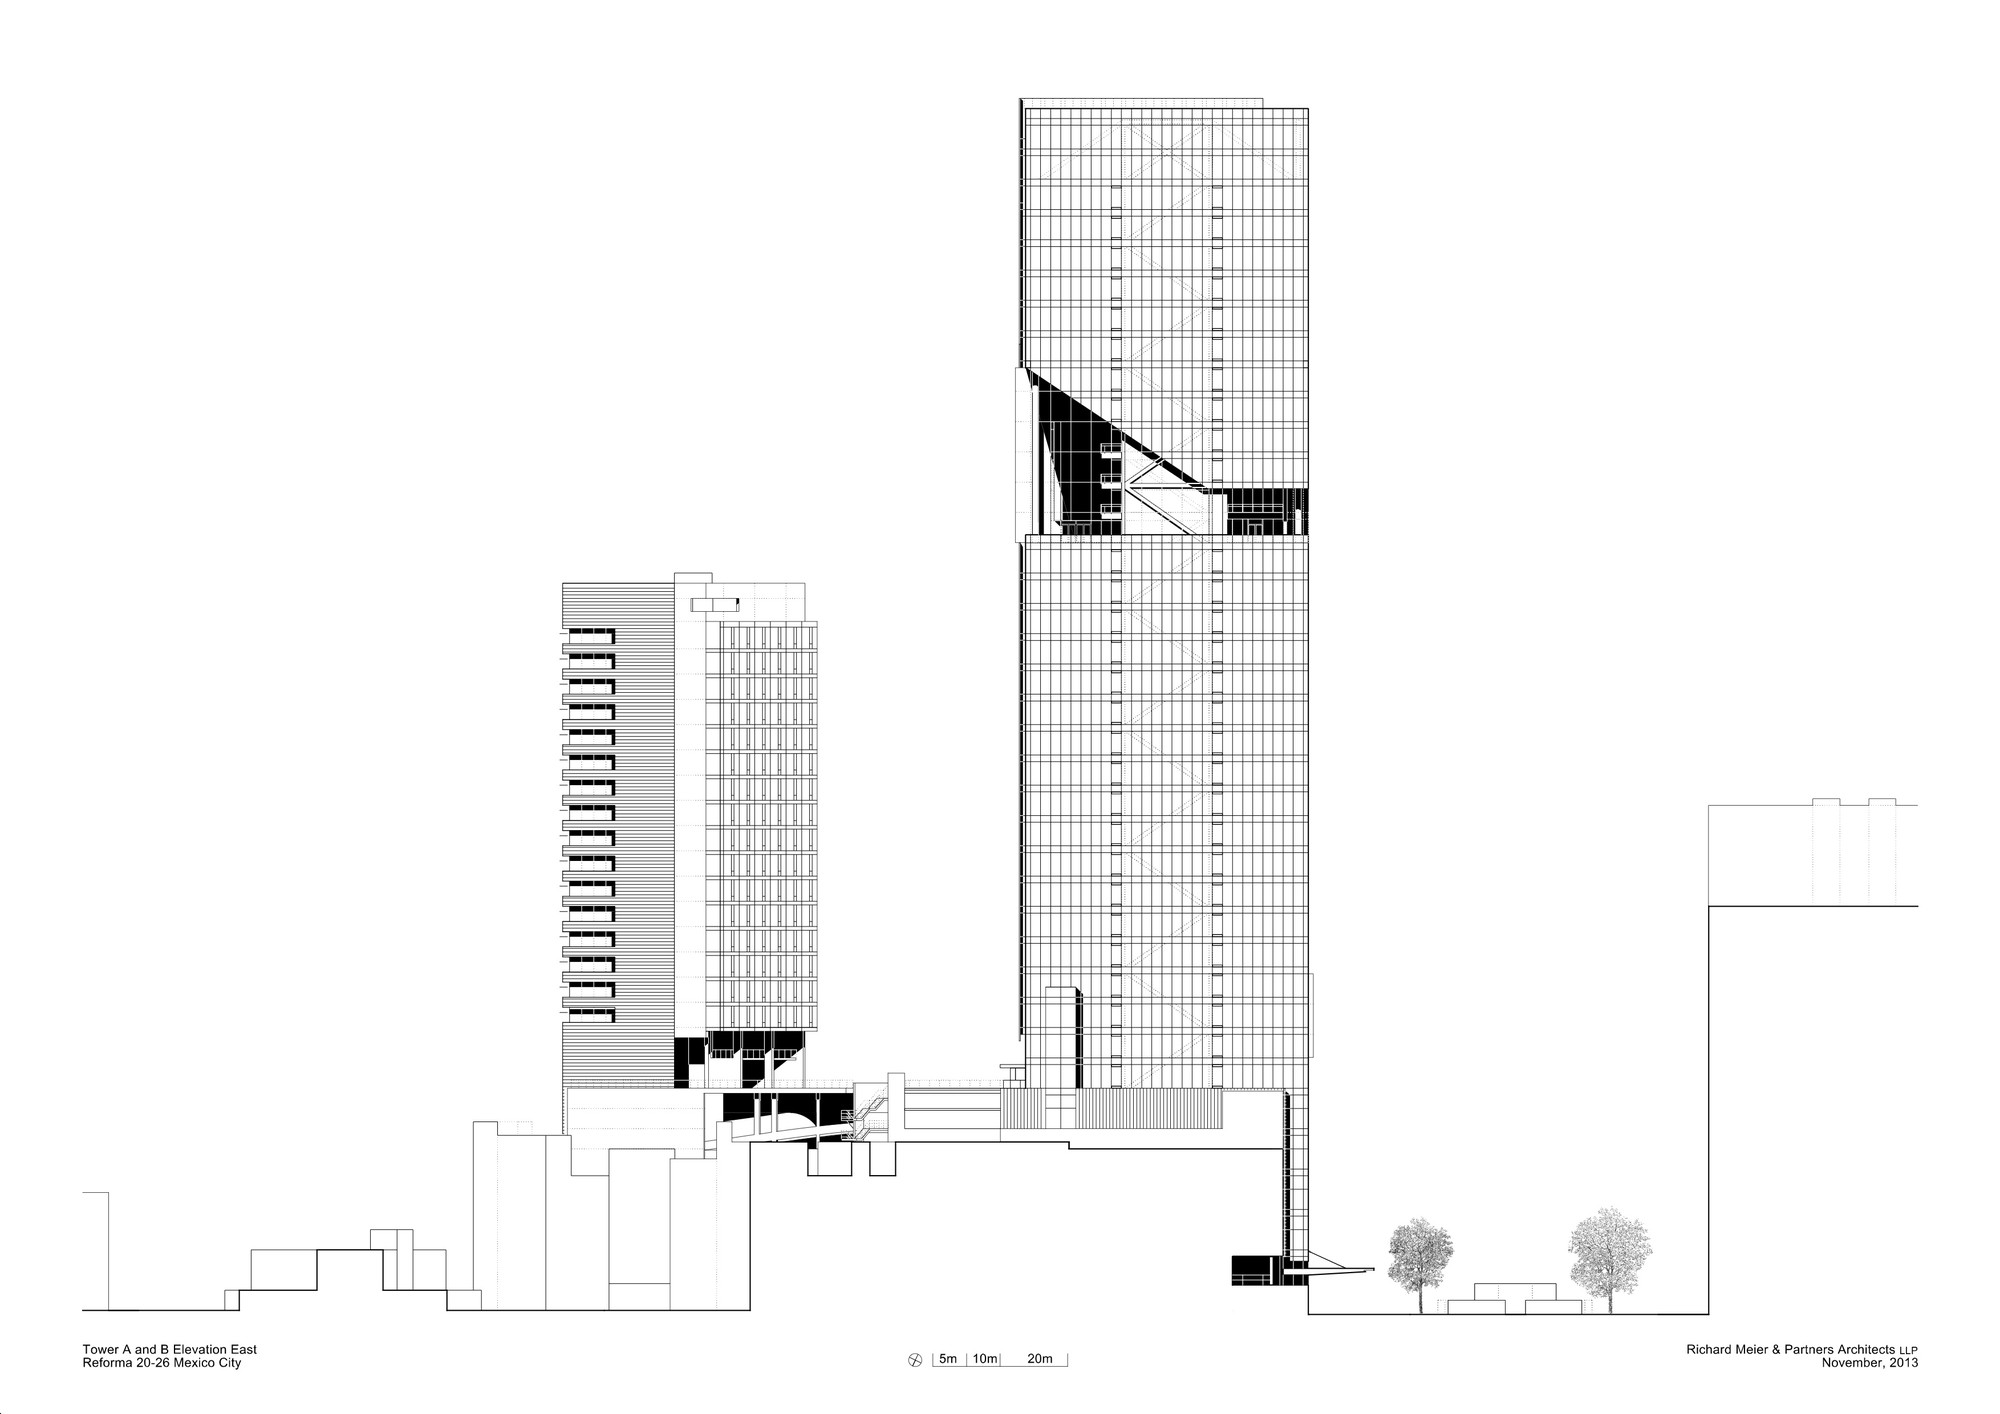 Cortesia de Richard Meier & Partners Architects LLP